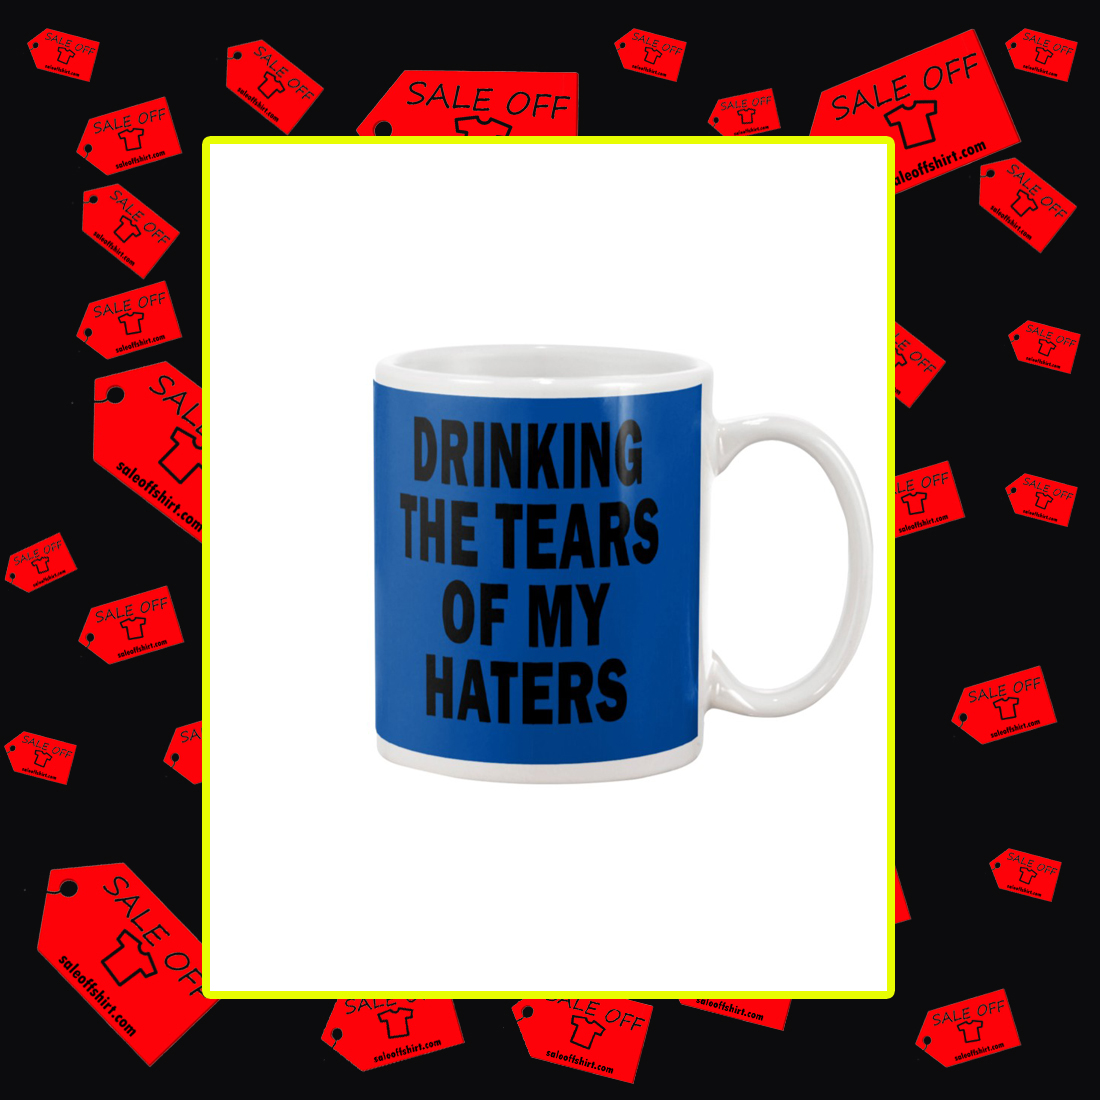 Drinking the tears of my haters mug - royal